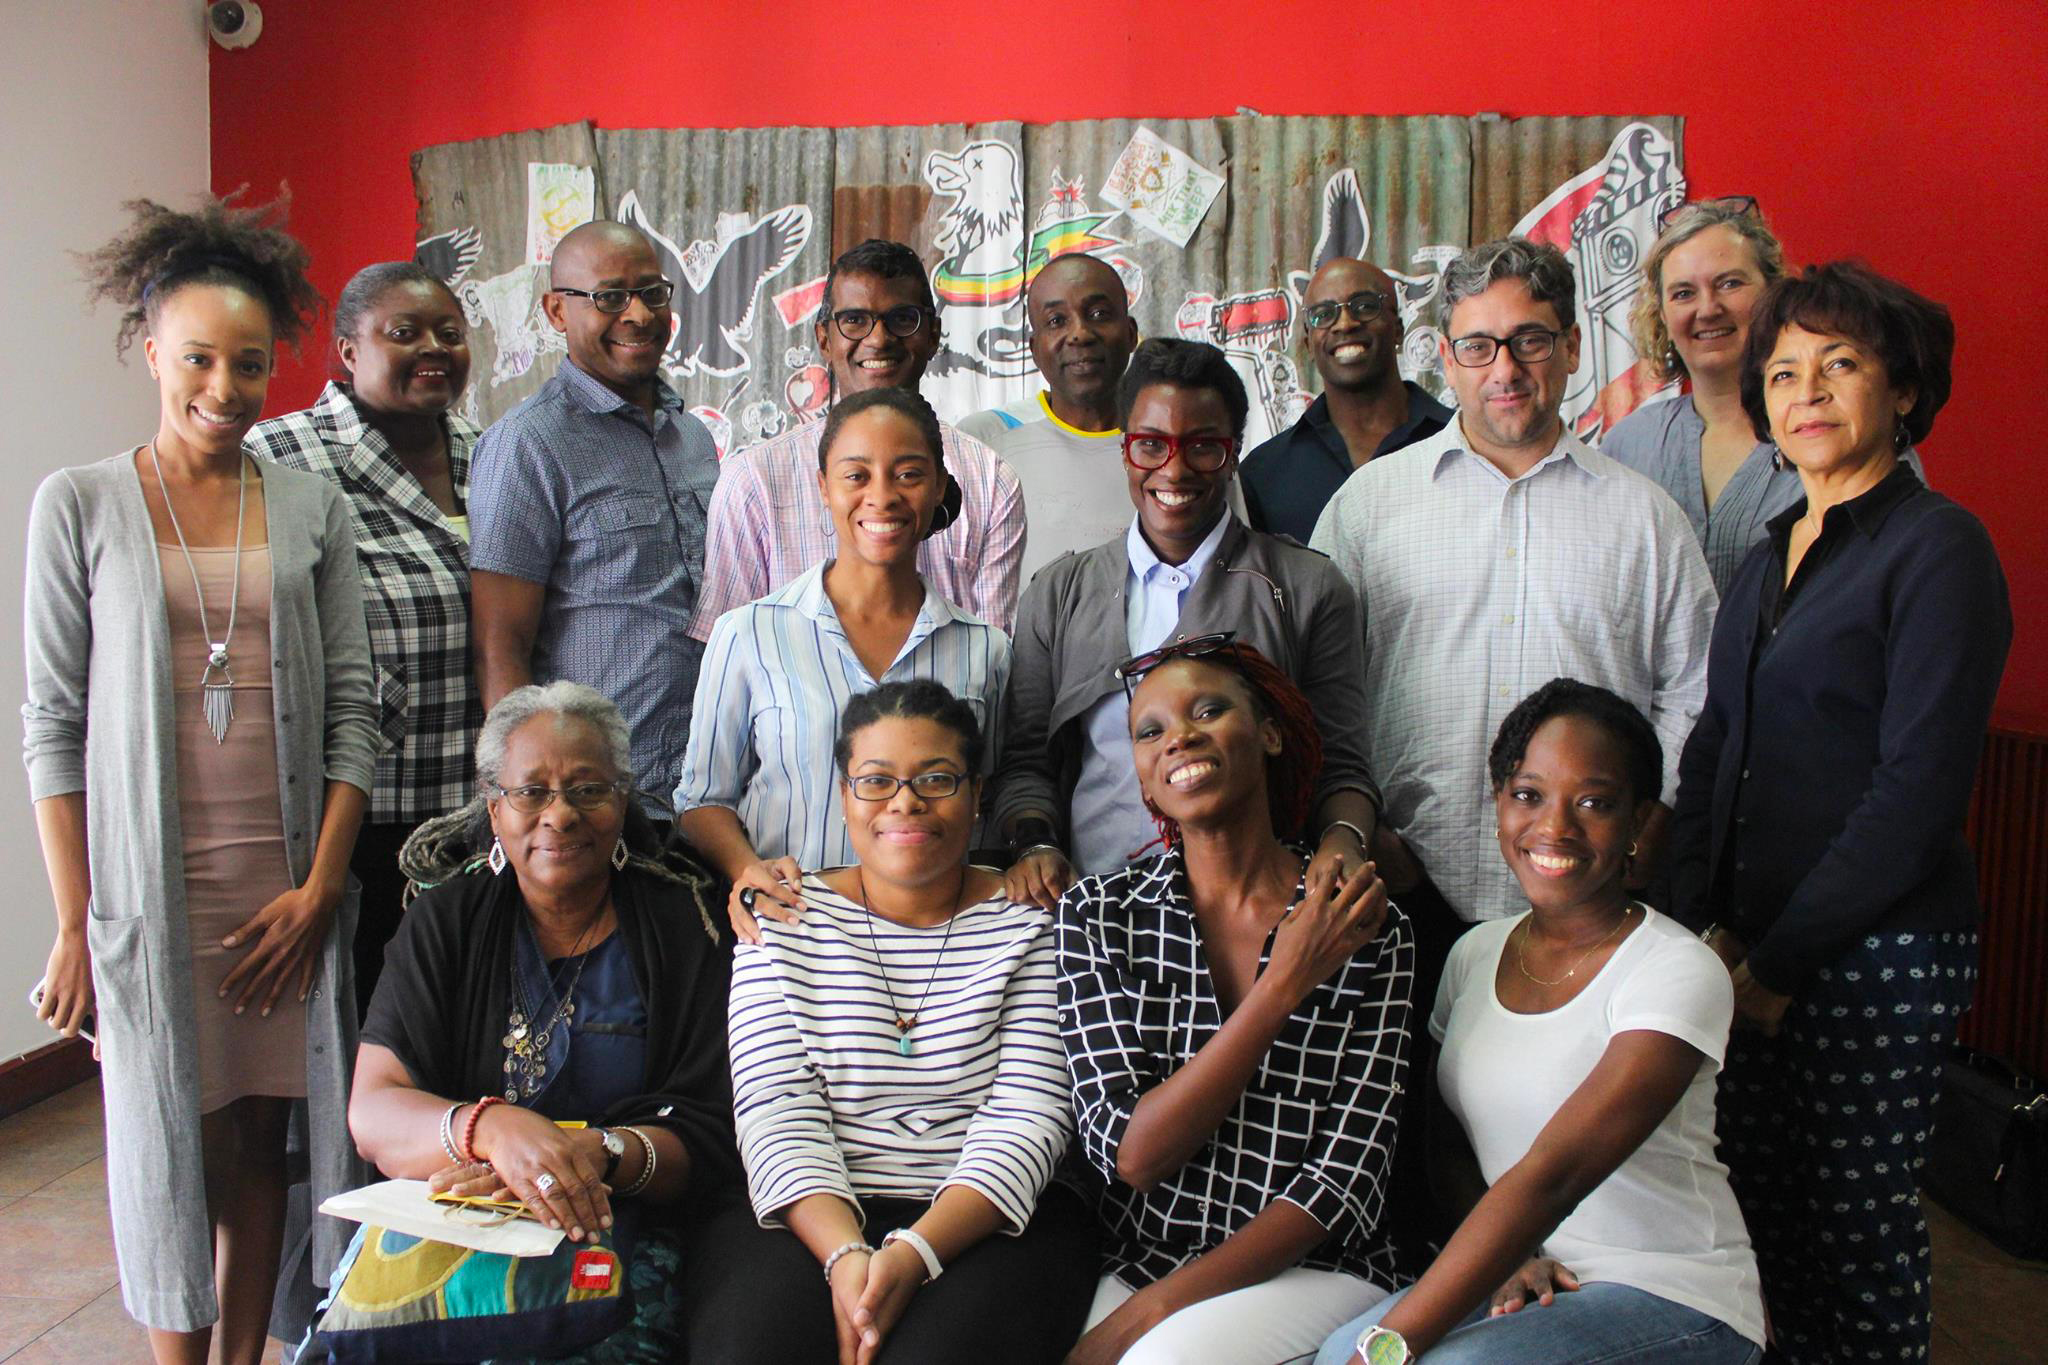 Creative Journalism Workshop partners, facilitators, and participants visit the National Gallery of Jamaica on Tuesday, January 10th. From Left (Back): Keisha Oliver, Joan Francis, Michael Bucknor, Andre Bagoo, Ian Jackson, O'Neil Lawrence and Claire Armitstead. From Left (Middle) Monique Barnett-Davidson, Melanie Archer, Gean Moreno, and Marina Salandy-Brown, From Left (Front) Icil Philips, Sasha Solomon, Denieve Manning and Kenesha Julius.